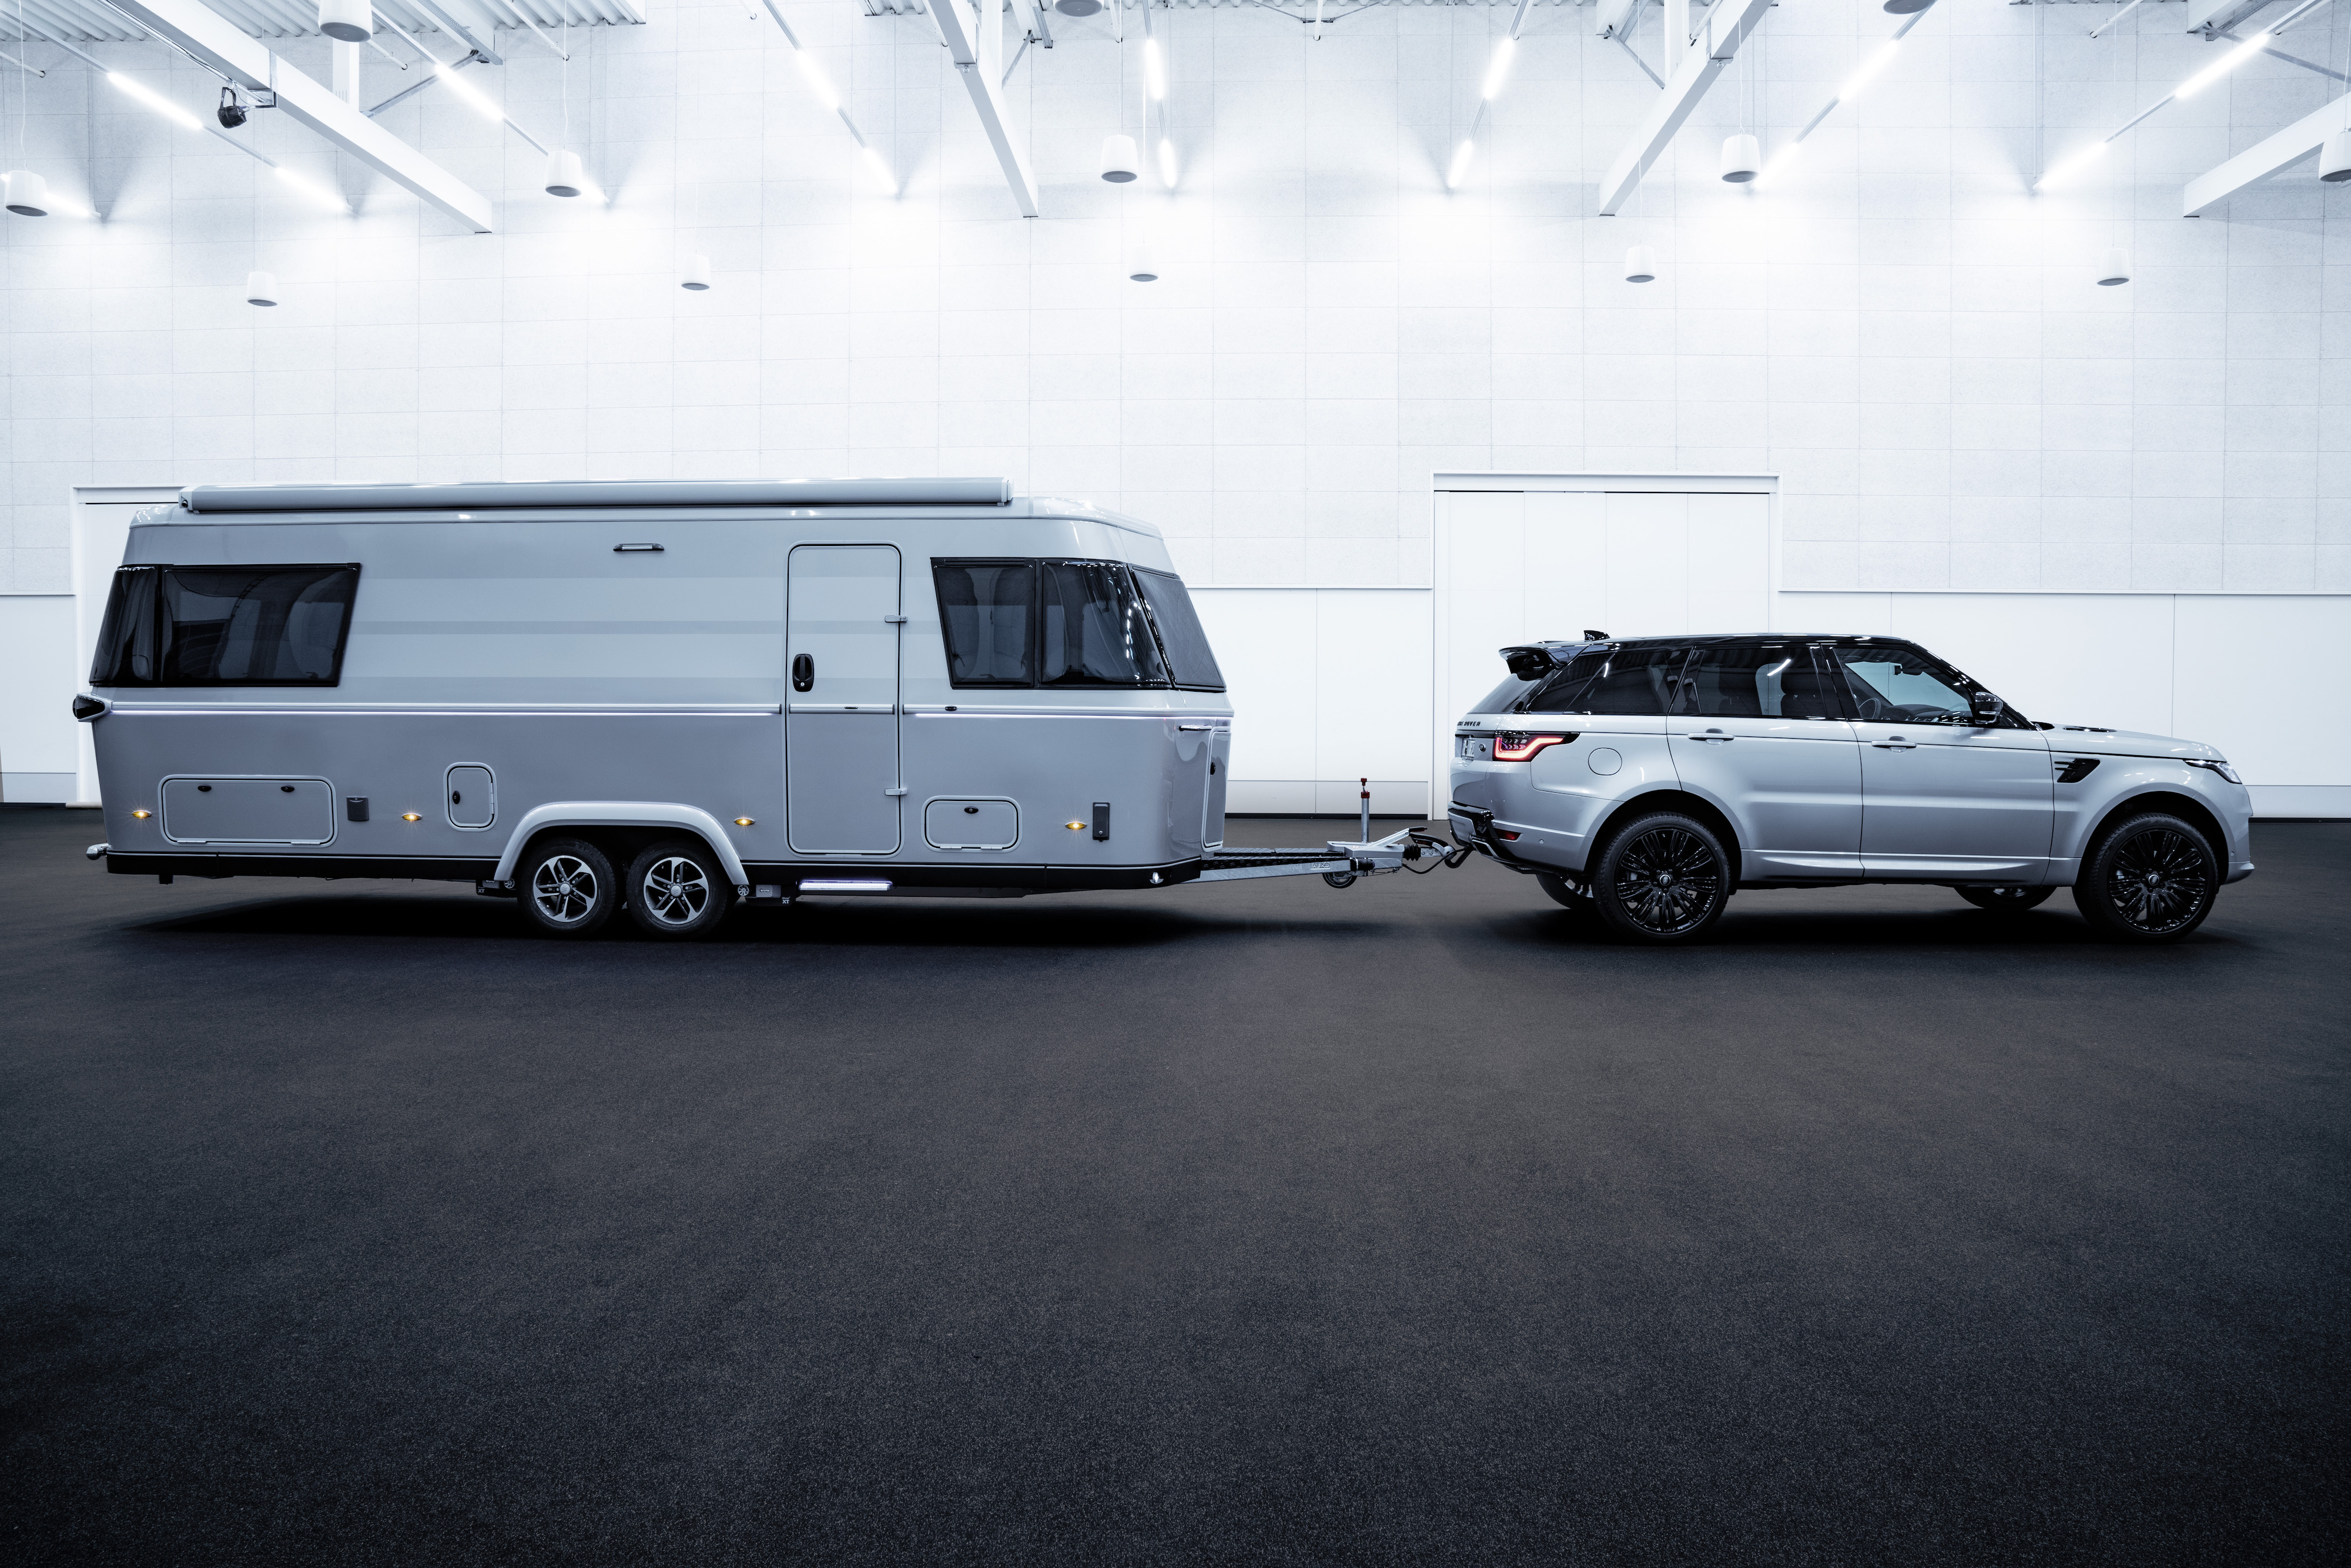 Is this travel trailer the future of RV design?